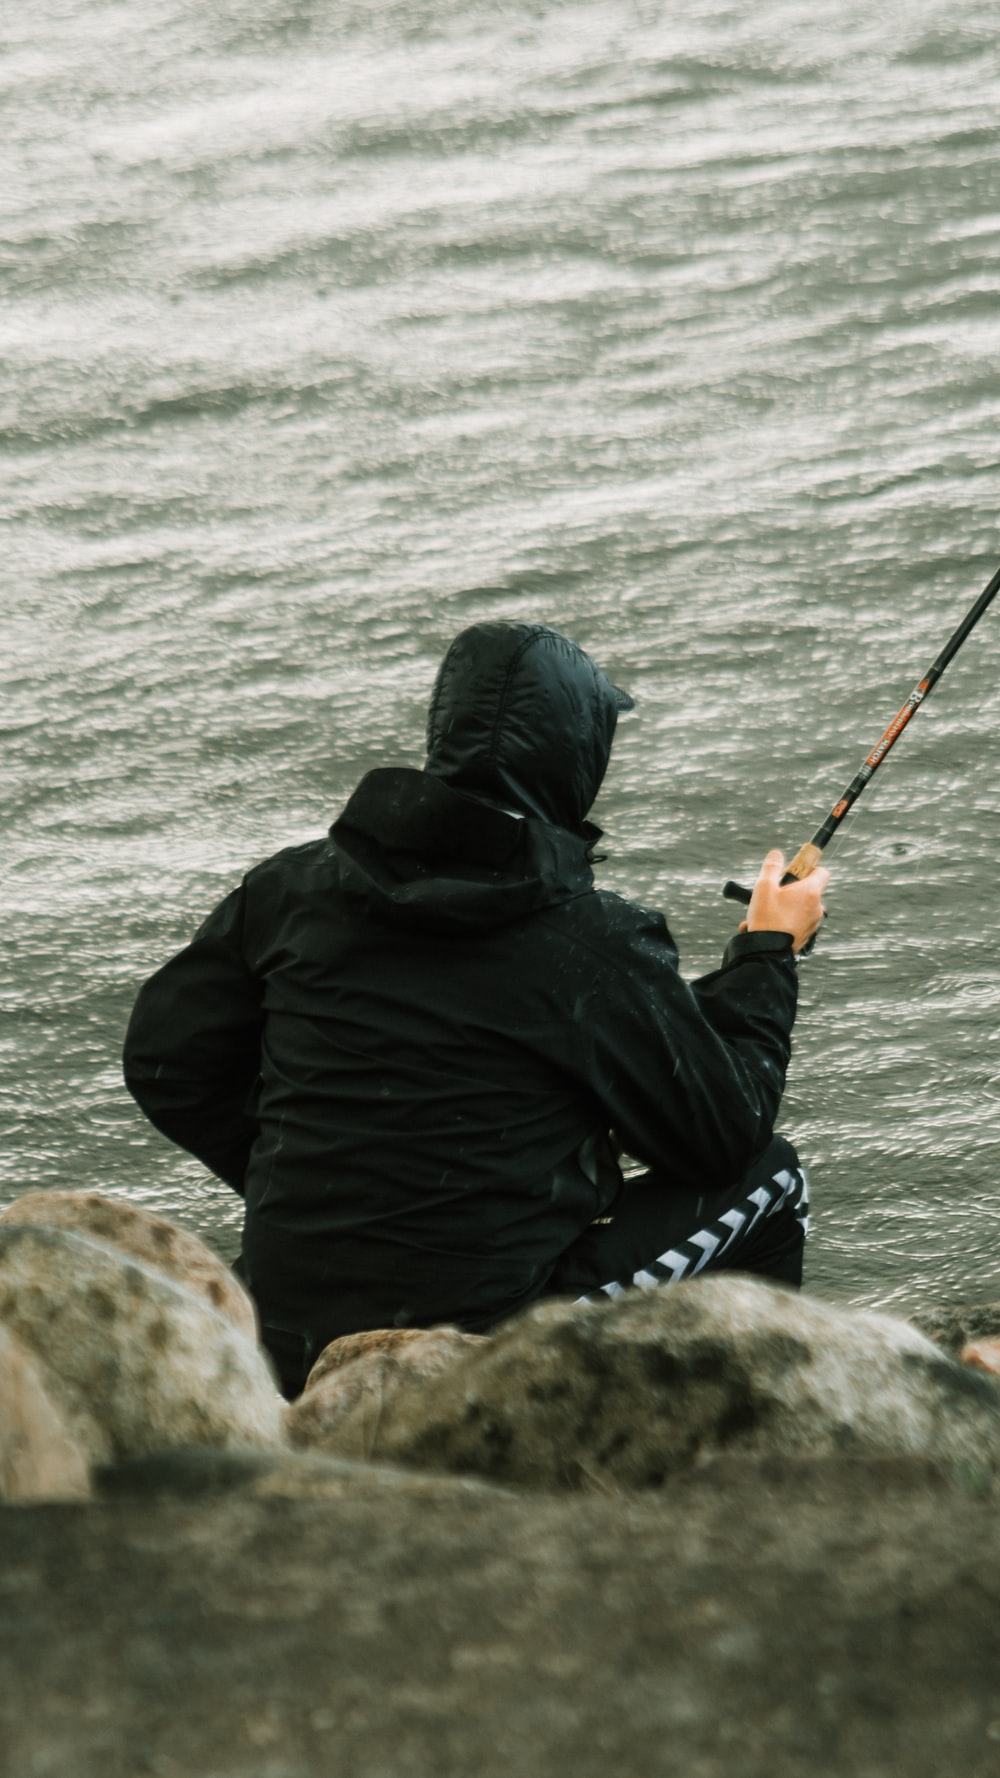 person in black jacket fishing on sea during daytime